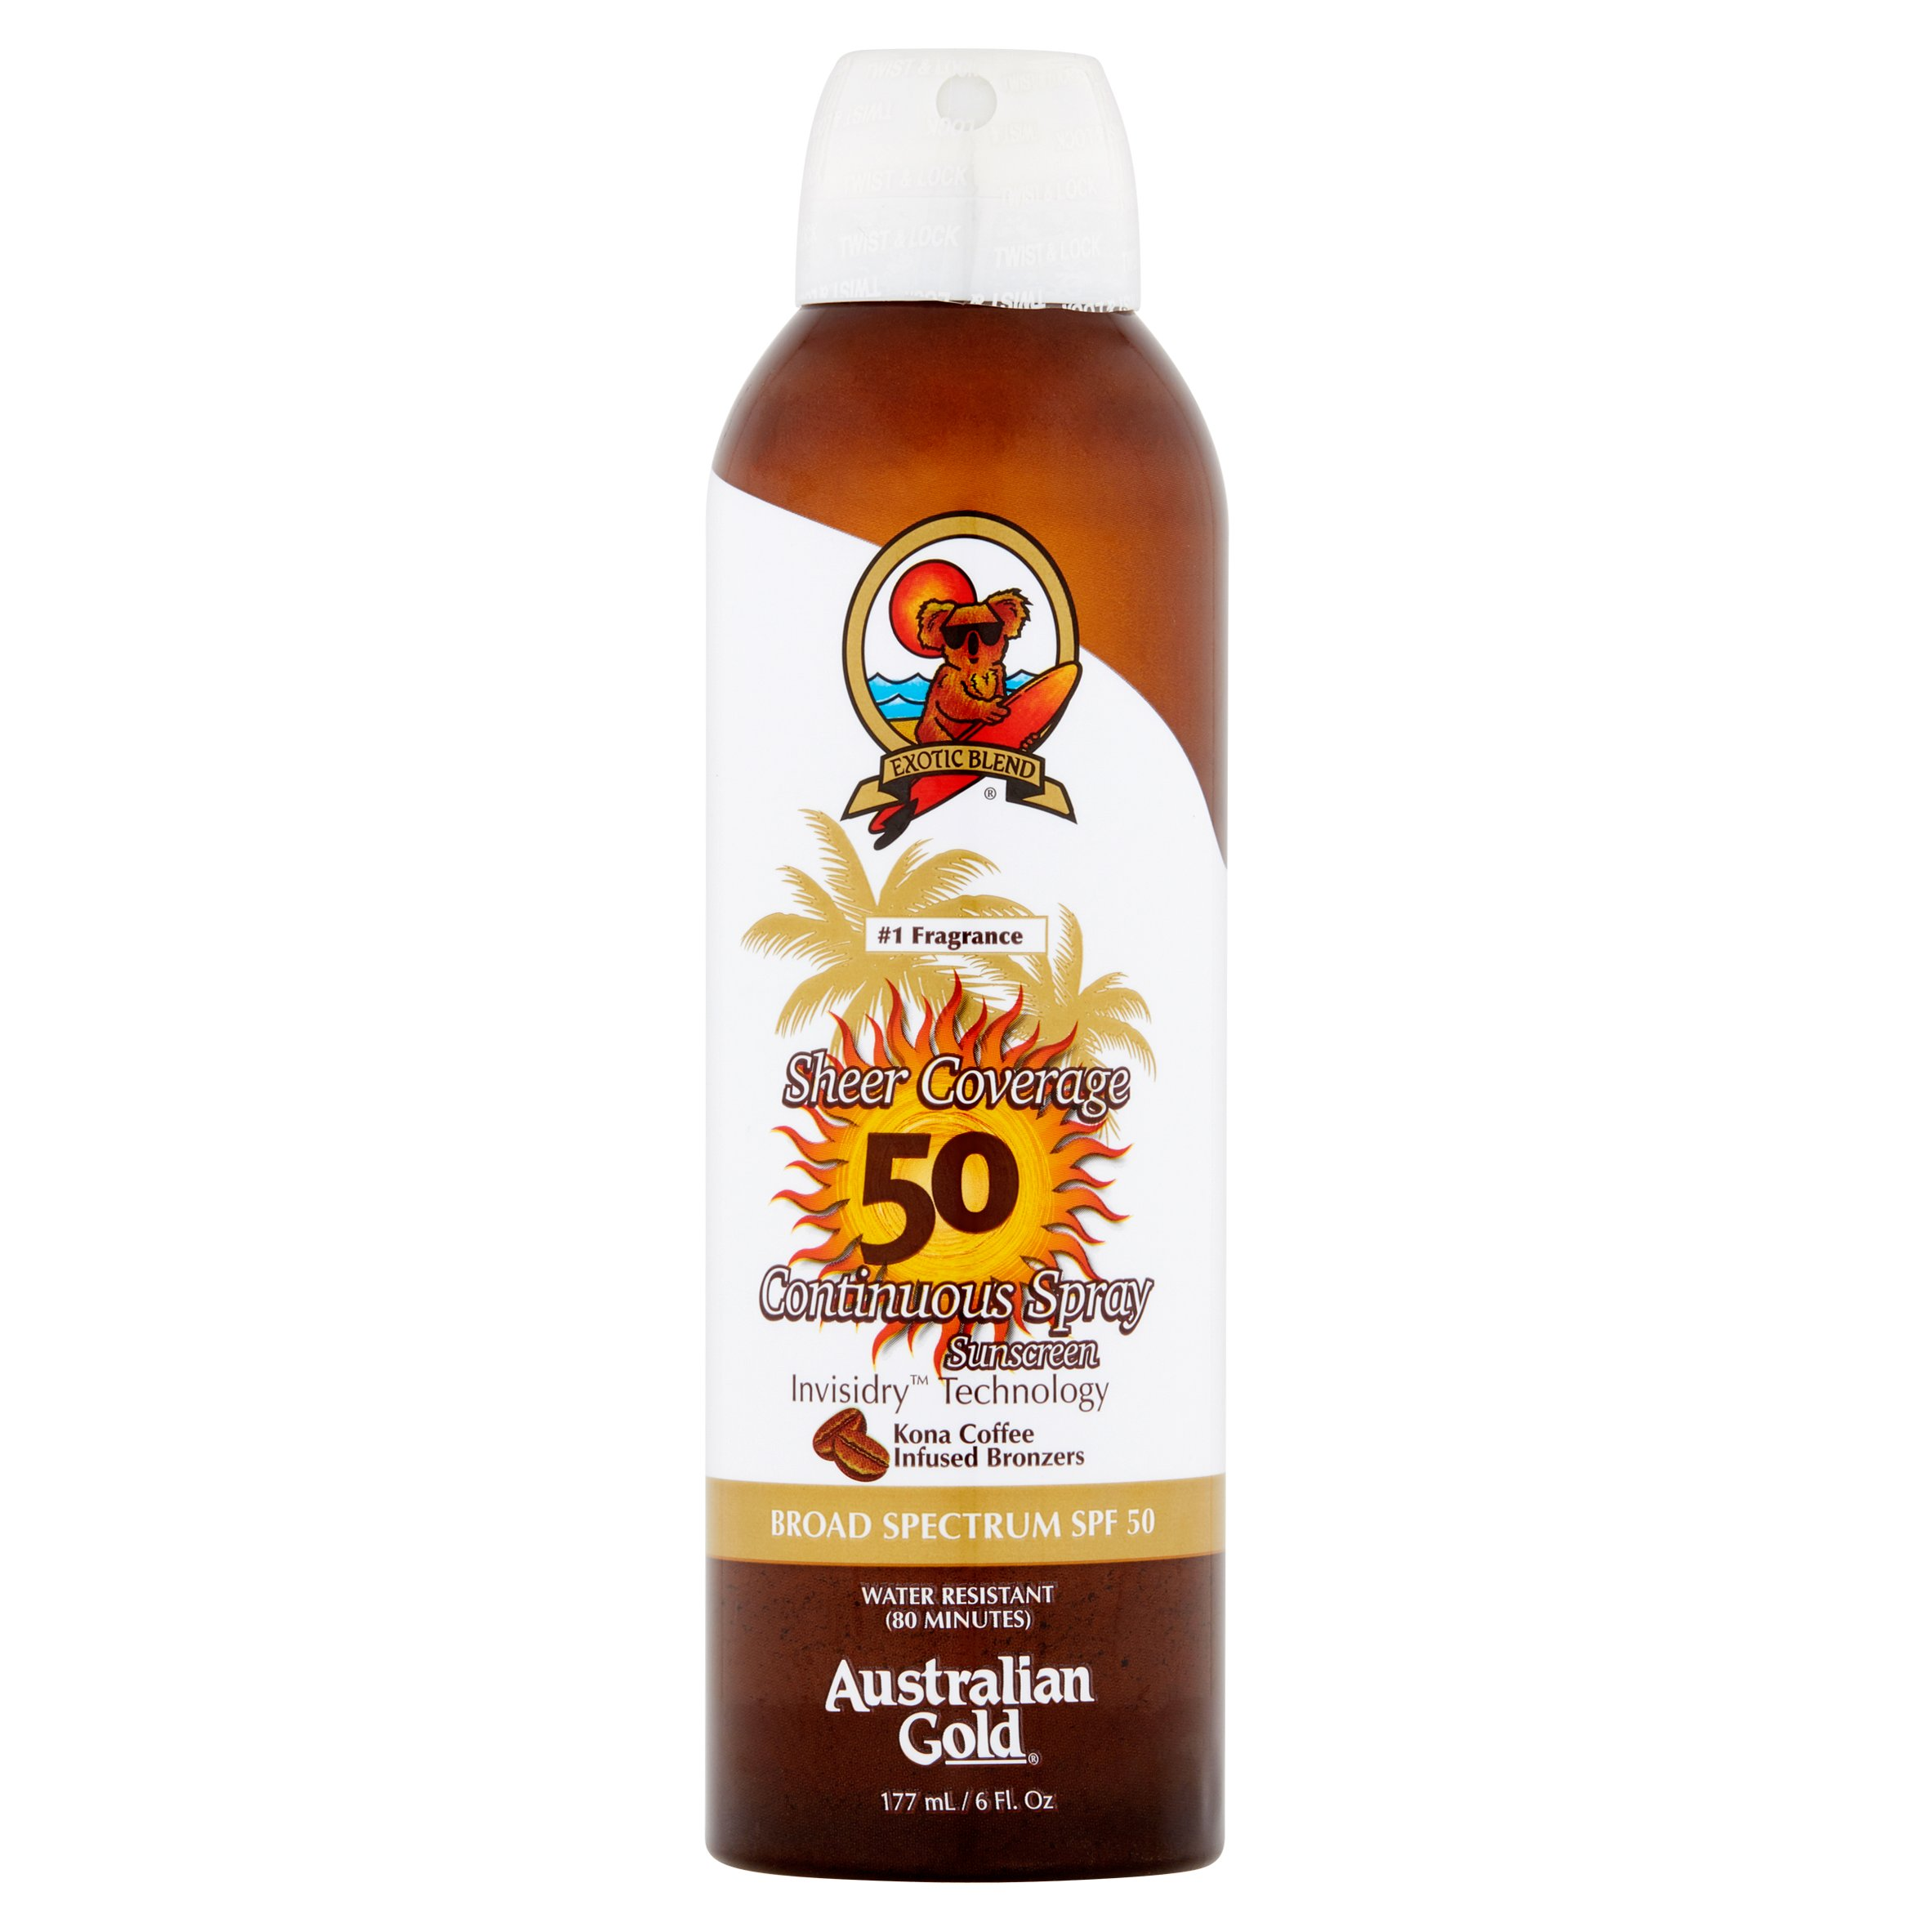 Australian Gold LLC Max Strength Continuous Spray Sunscreen SPF 50 Australian Gold Sheer Coverage, 6 fl oz